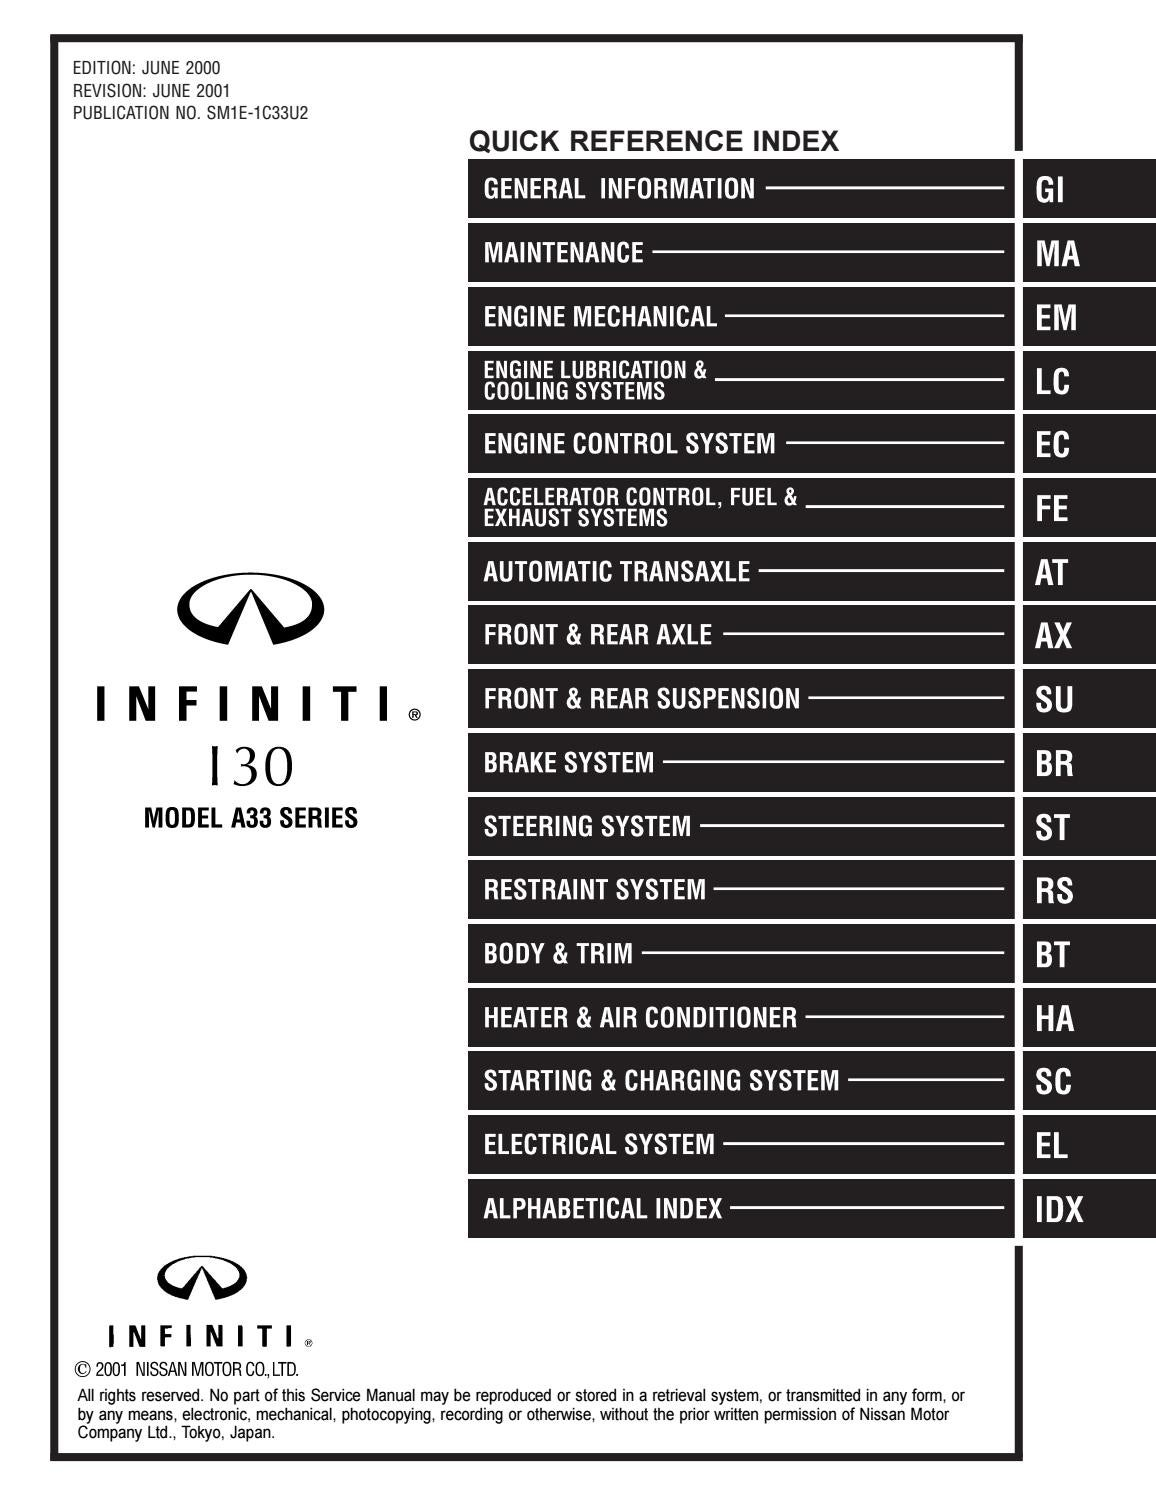 [SCHEMATICS_4ER]  2001 Infiniti I30 Service Repair Manual by 163101 - issuu | Infiniti I30 Ecm Wiring Harness |  | Issuu